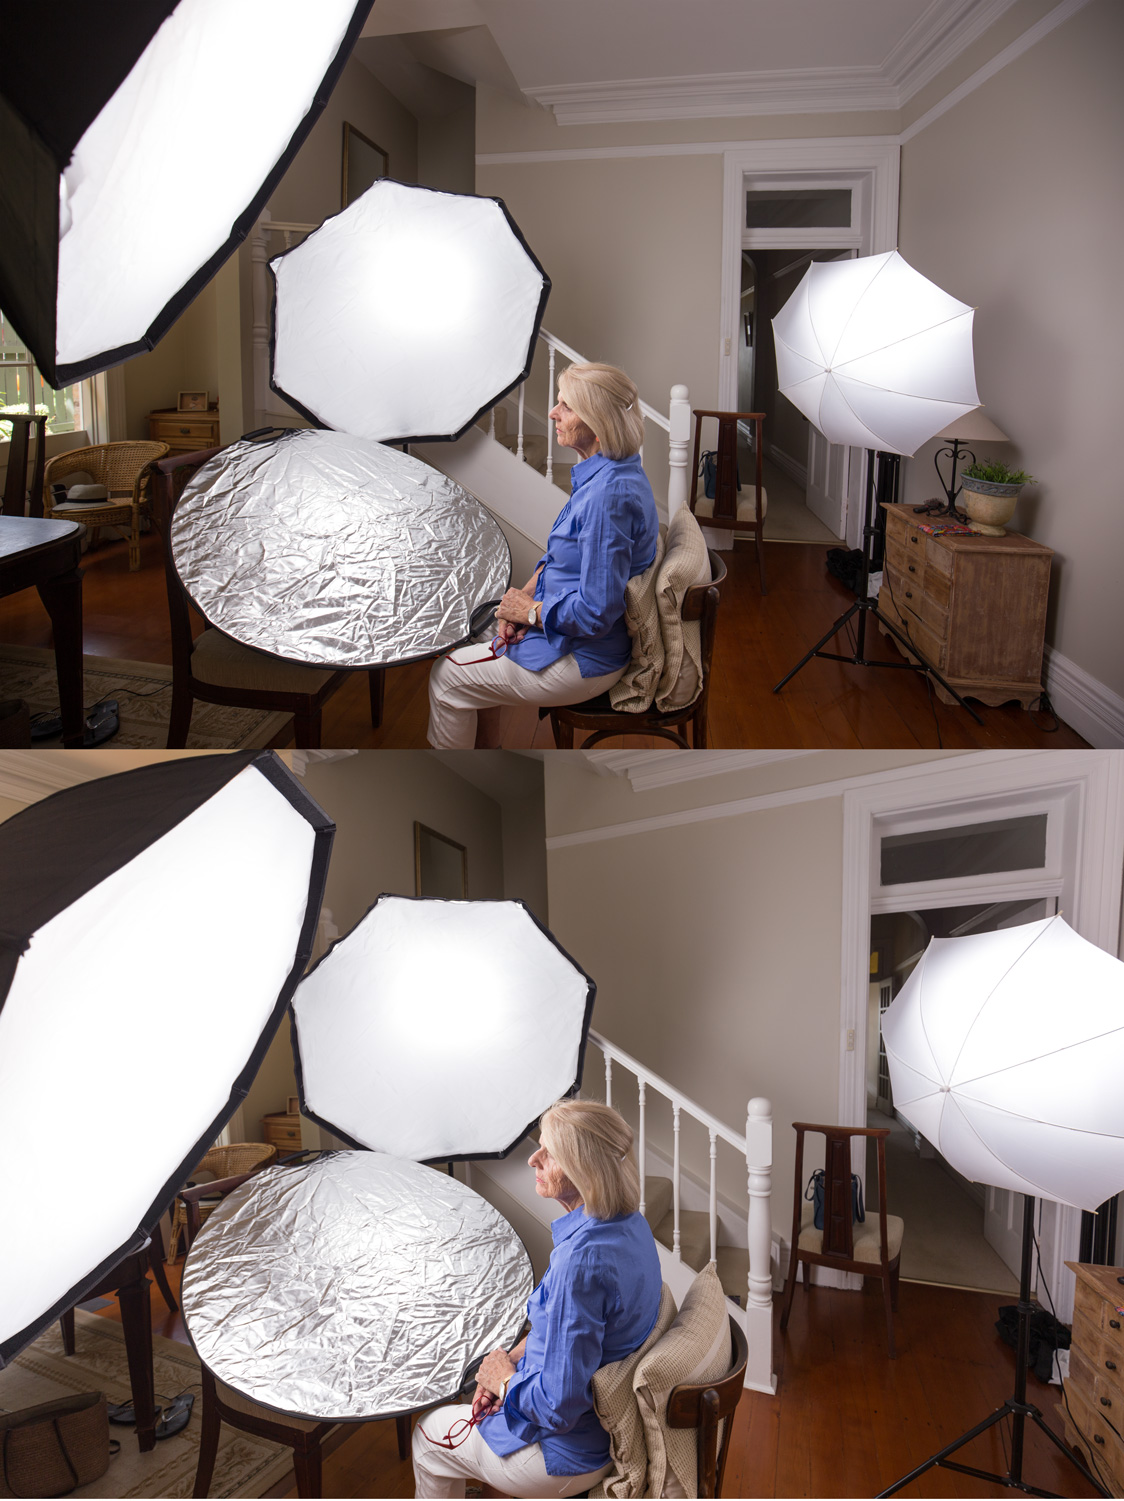 Image: Dropping your key light by just a small amount can have a dramatic difference to the final im...